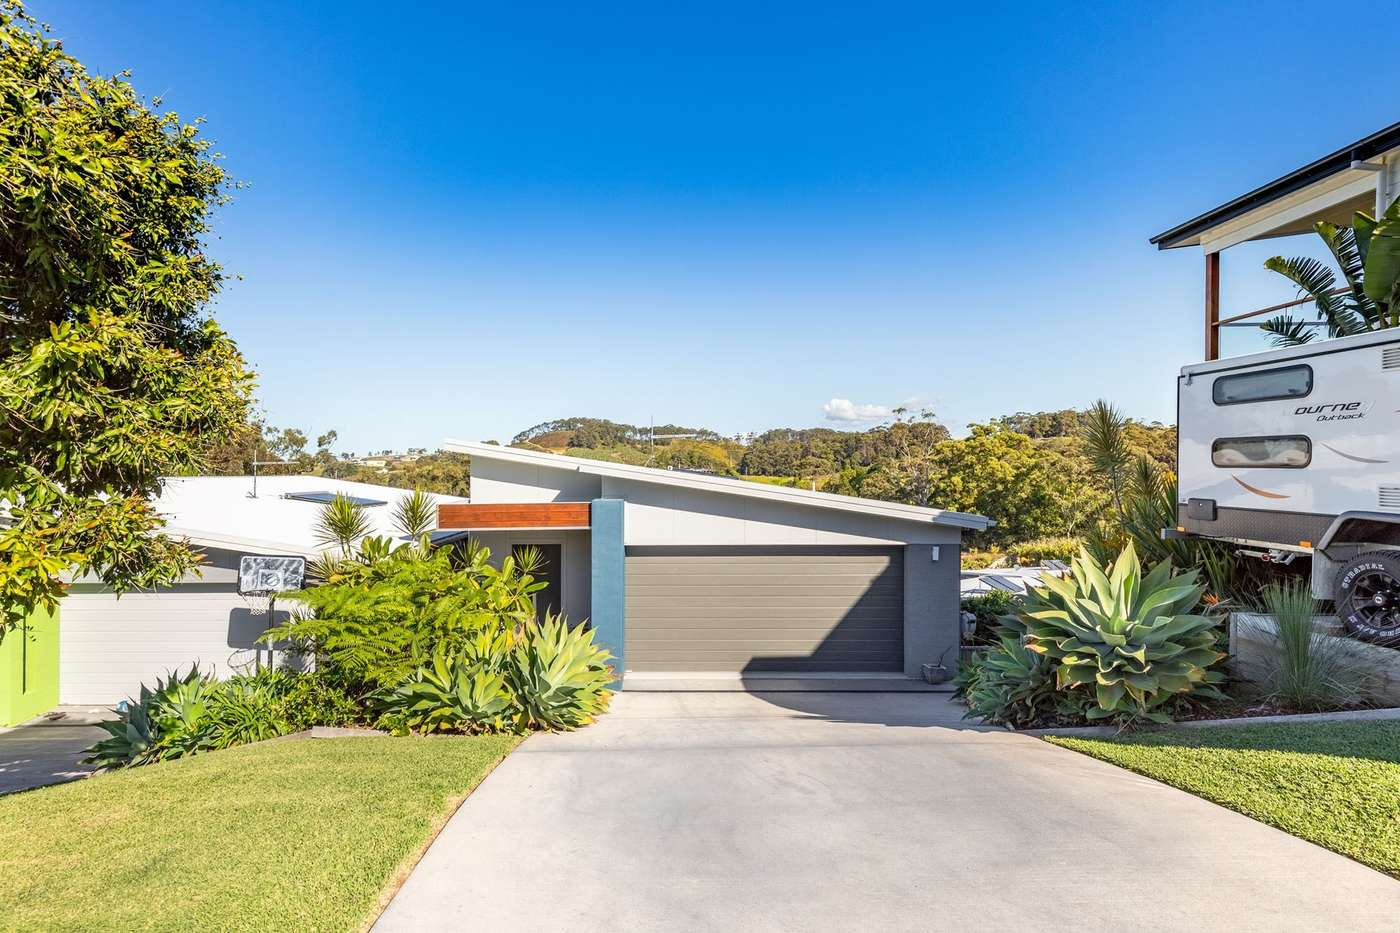 Main view of Homely house listing, 2/21 Ballantine Drive, Korora, NSW 2450